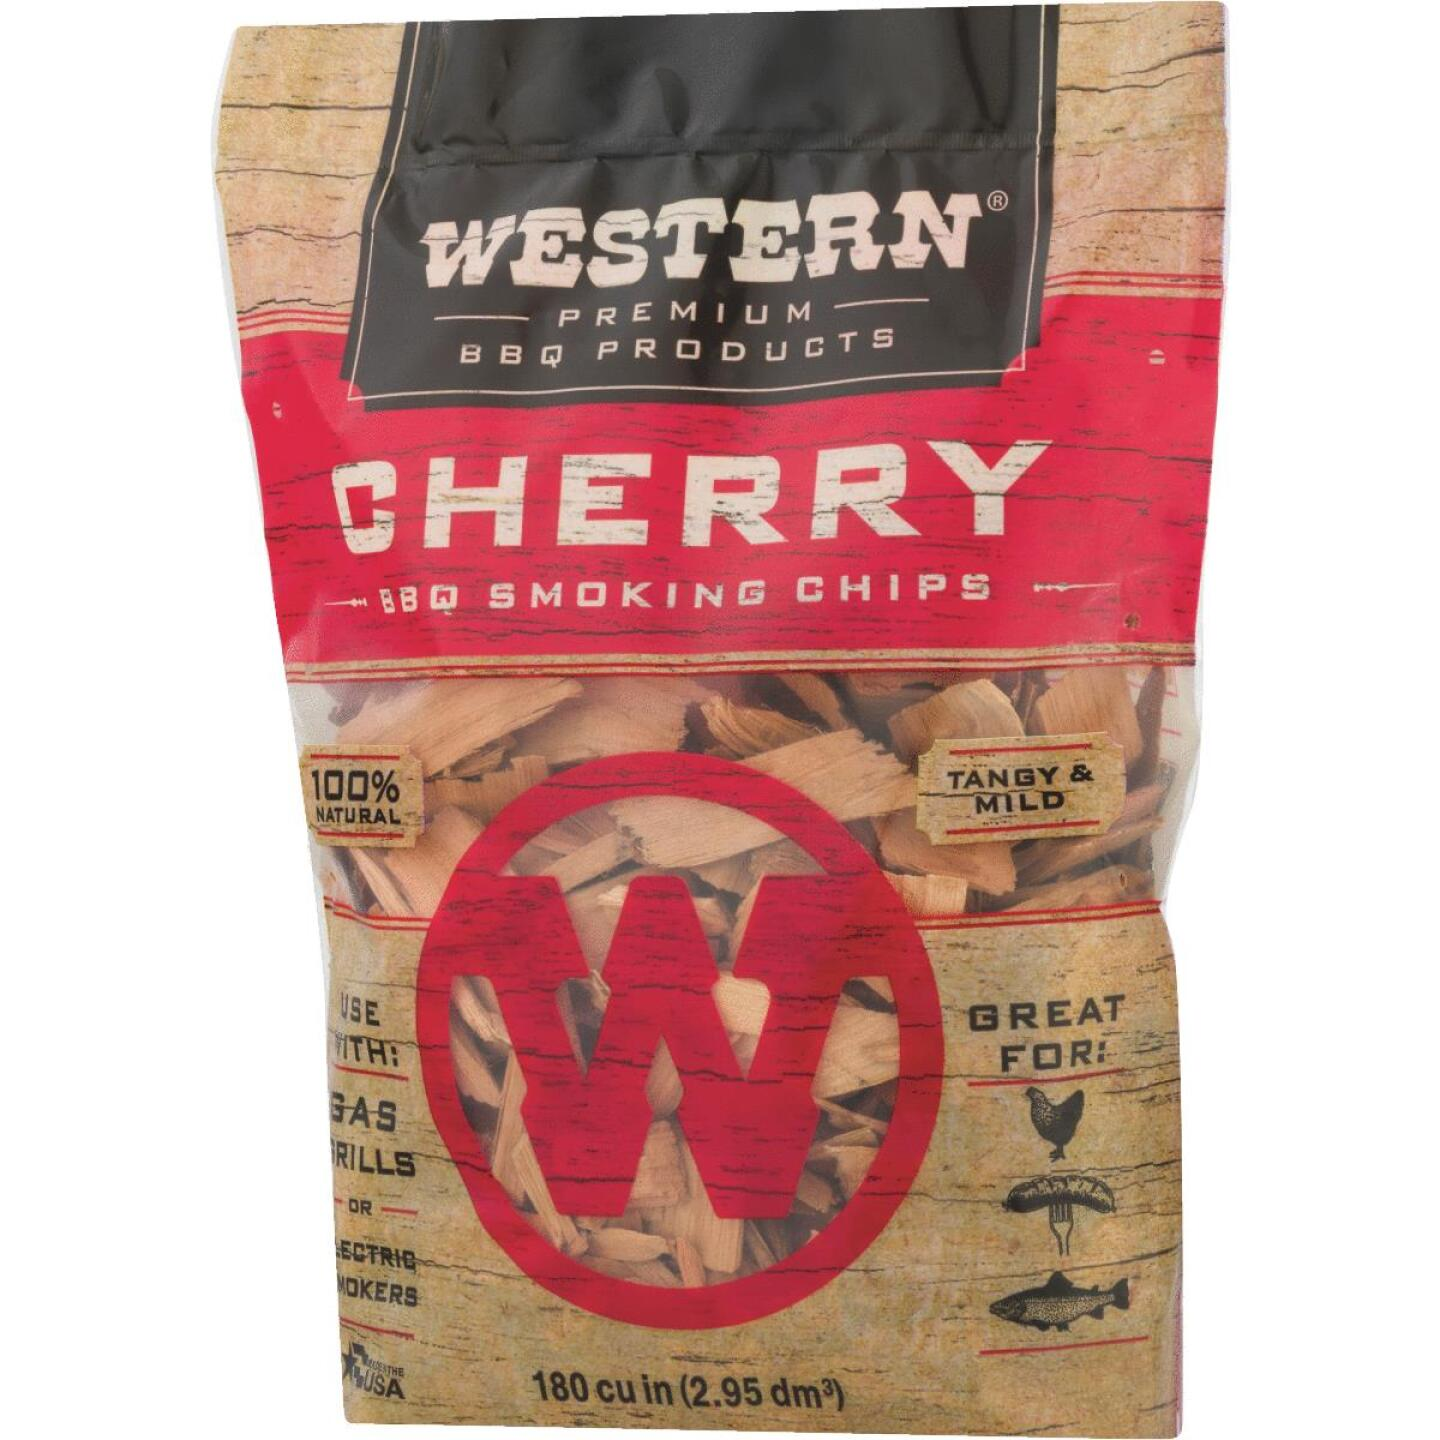 Western 180 Cu. In. Cherry Wood Smoking Chips Image 2